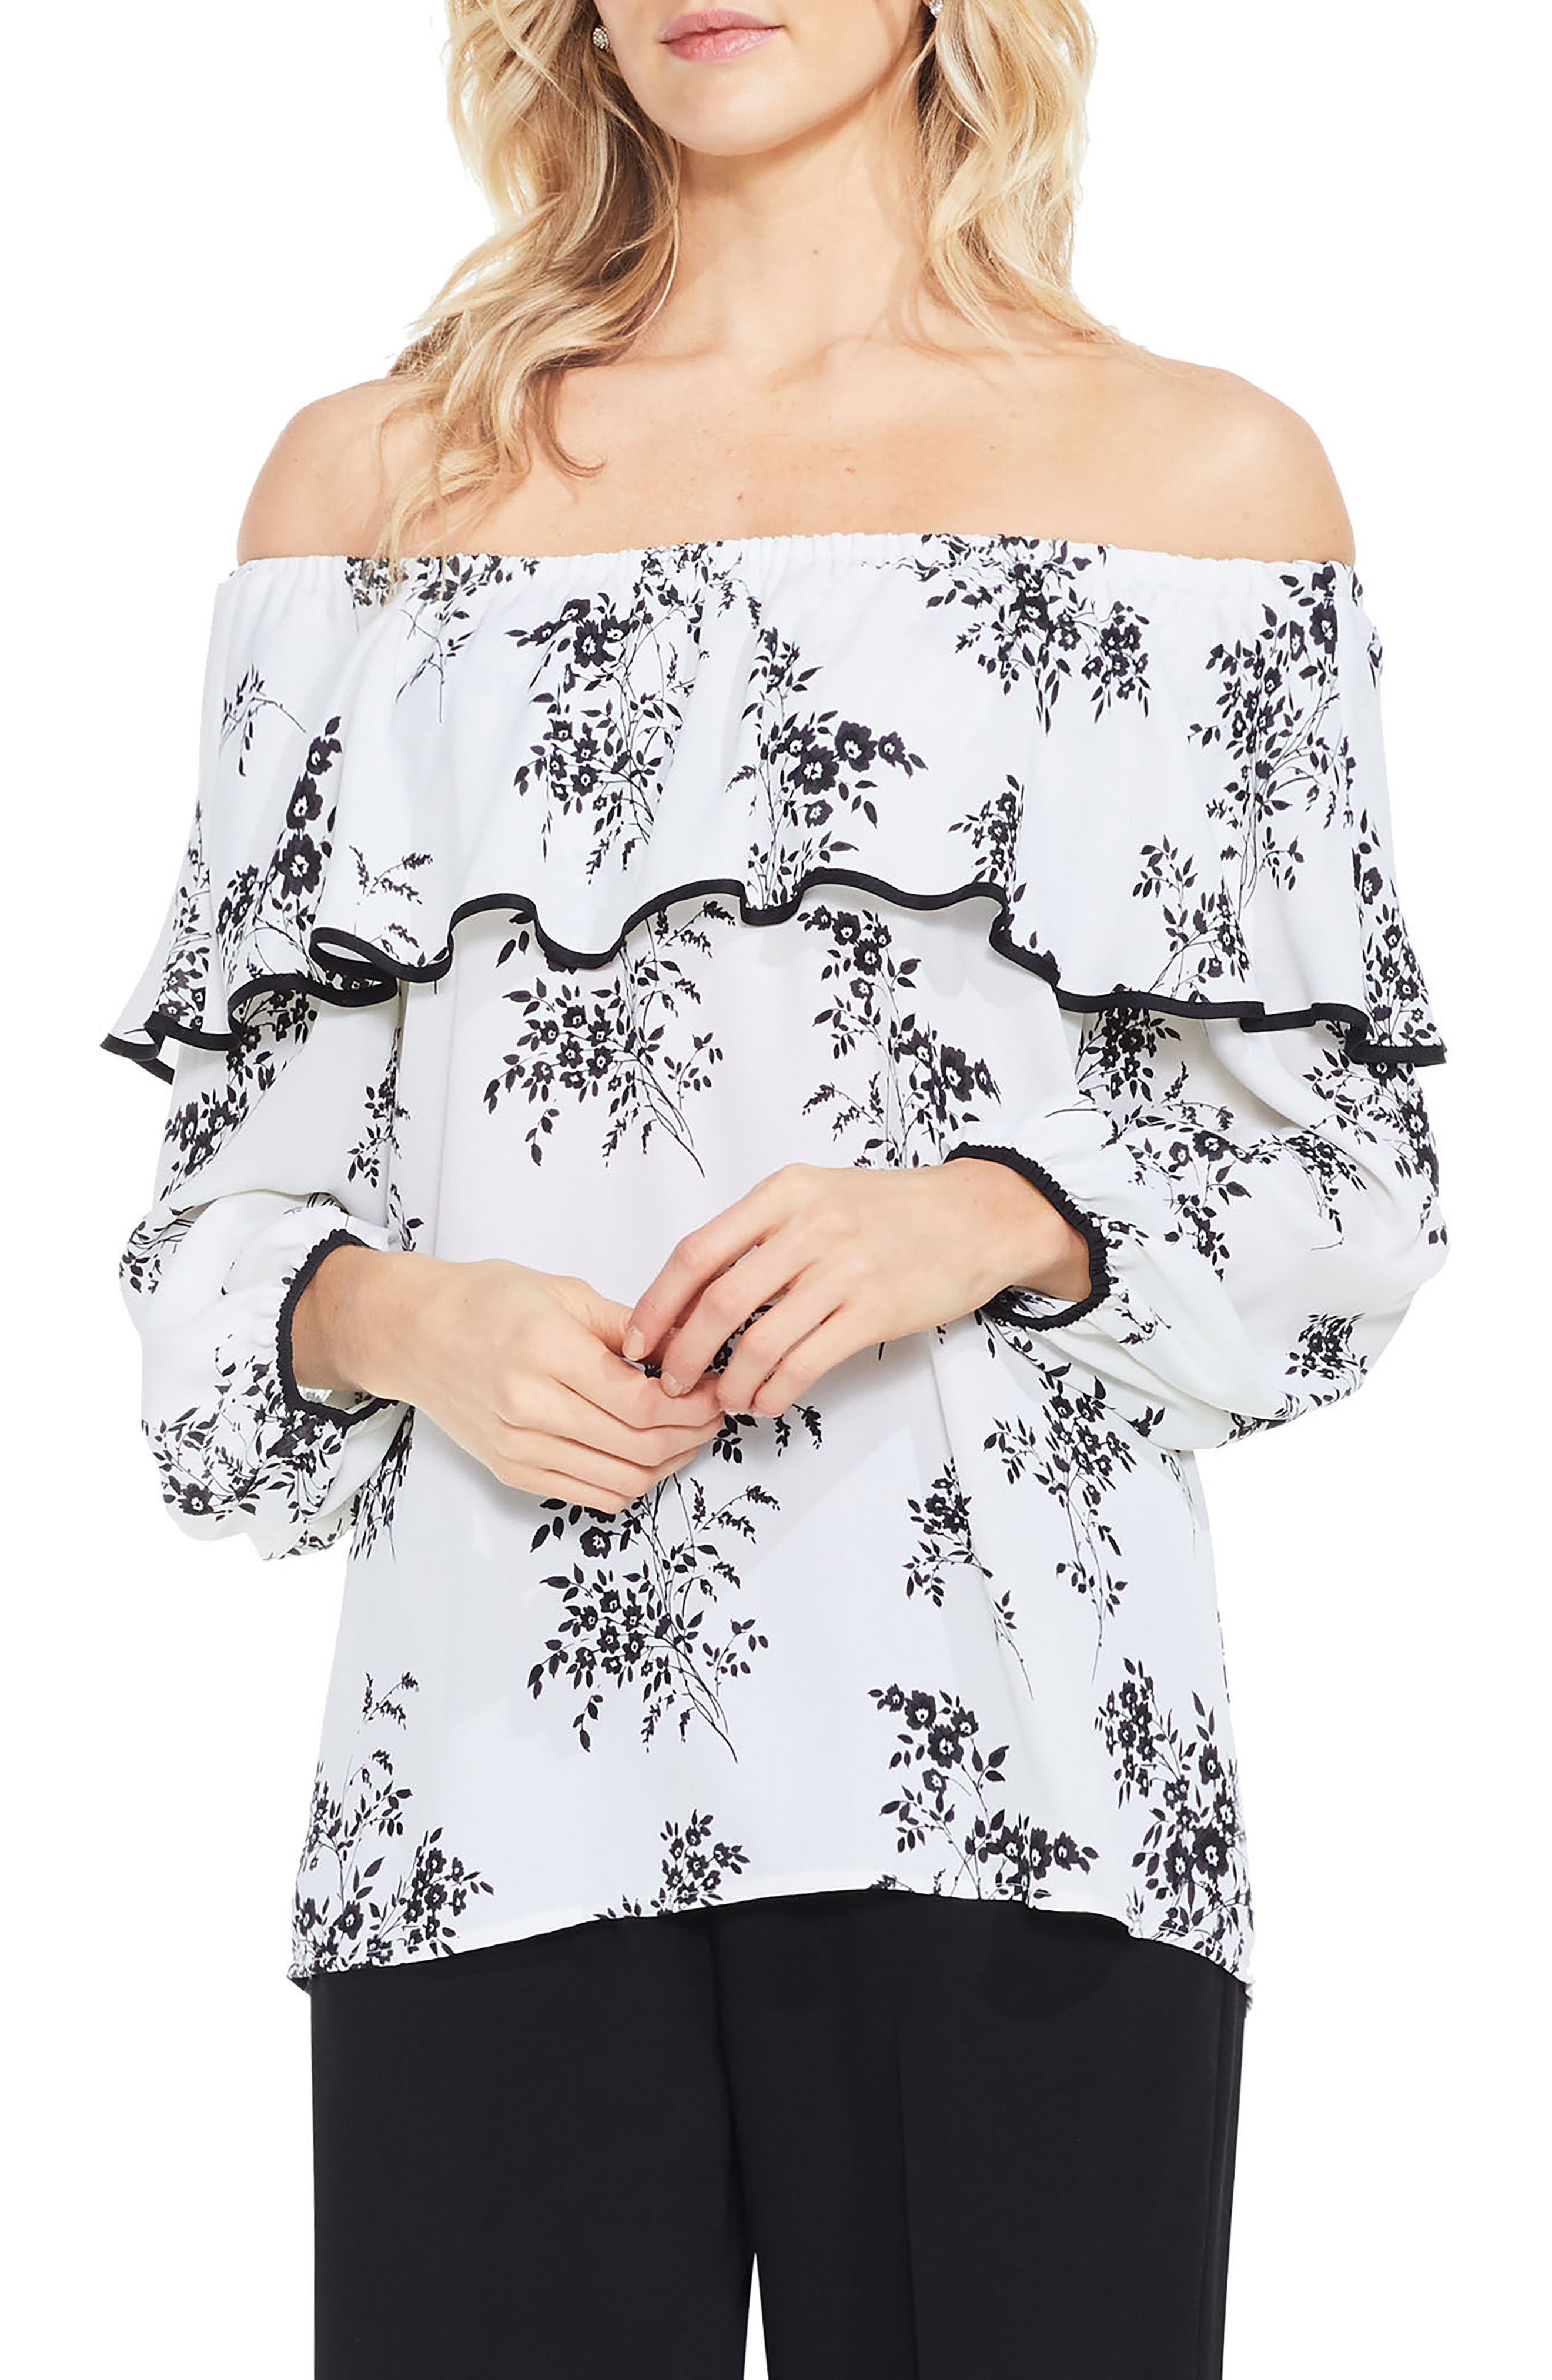 Alternate Image 1 Selected - Vince Camuto Delicate Bouquet Off the Shoulder Blouse